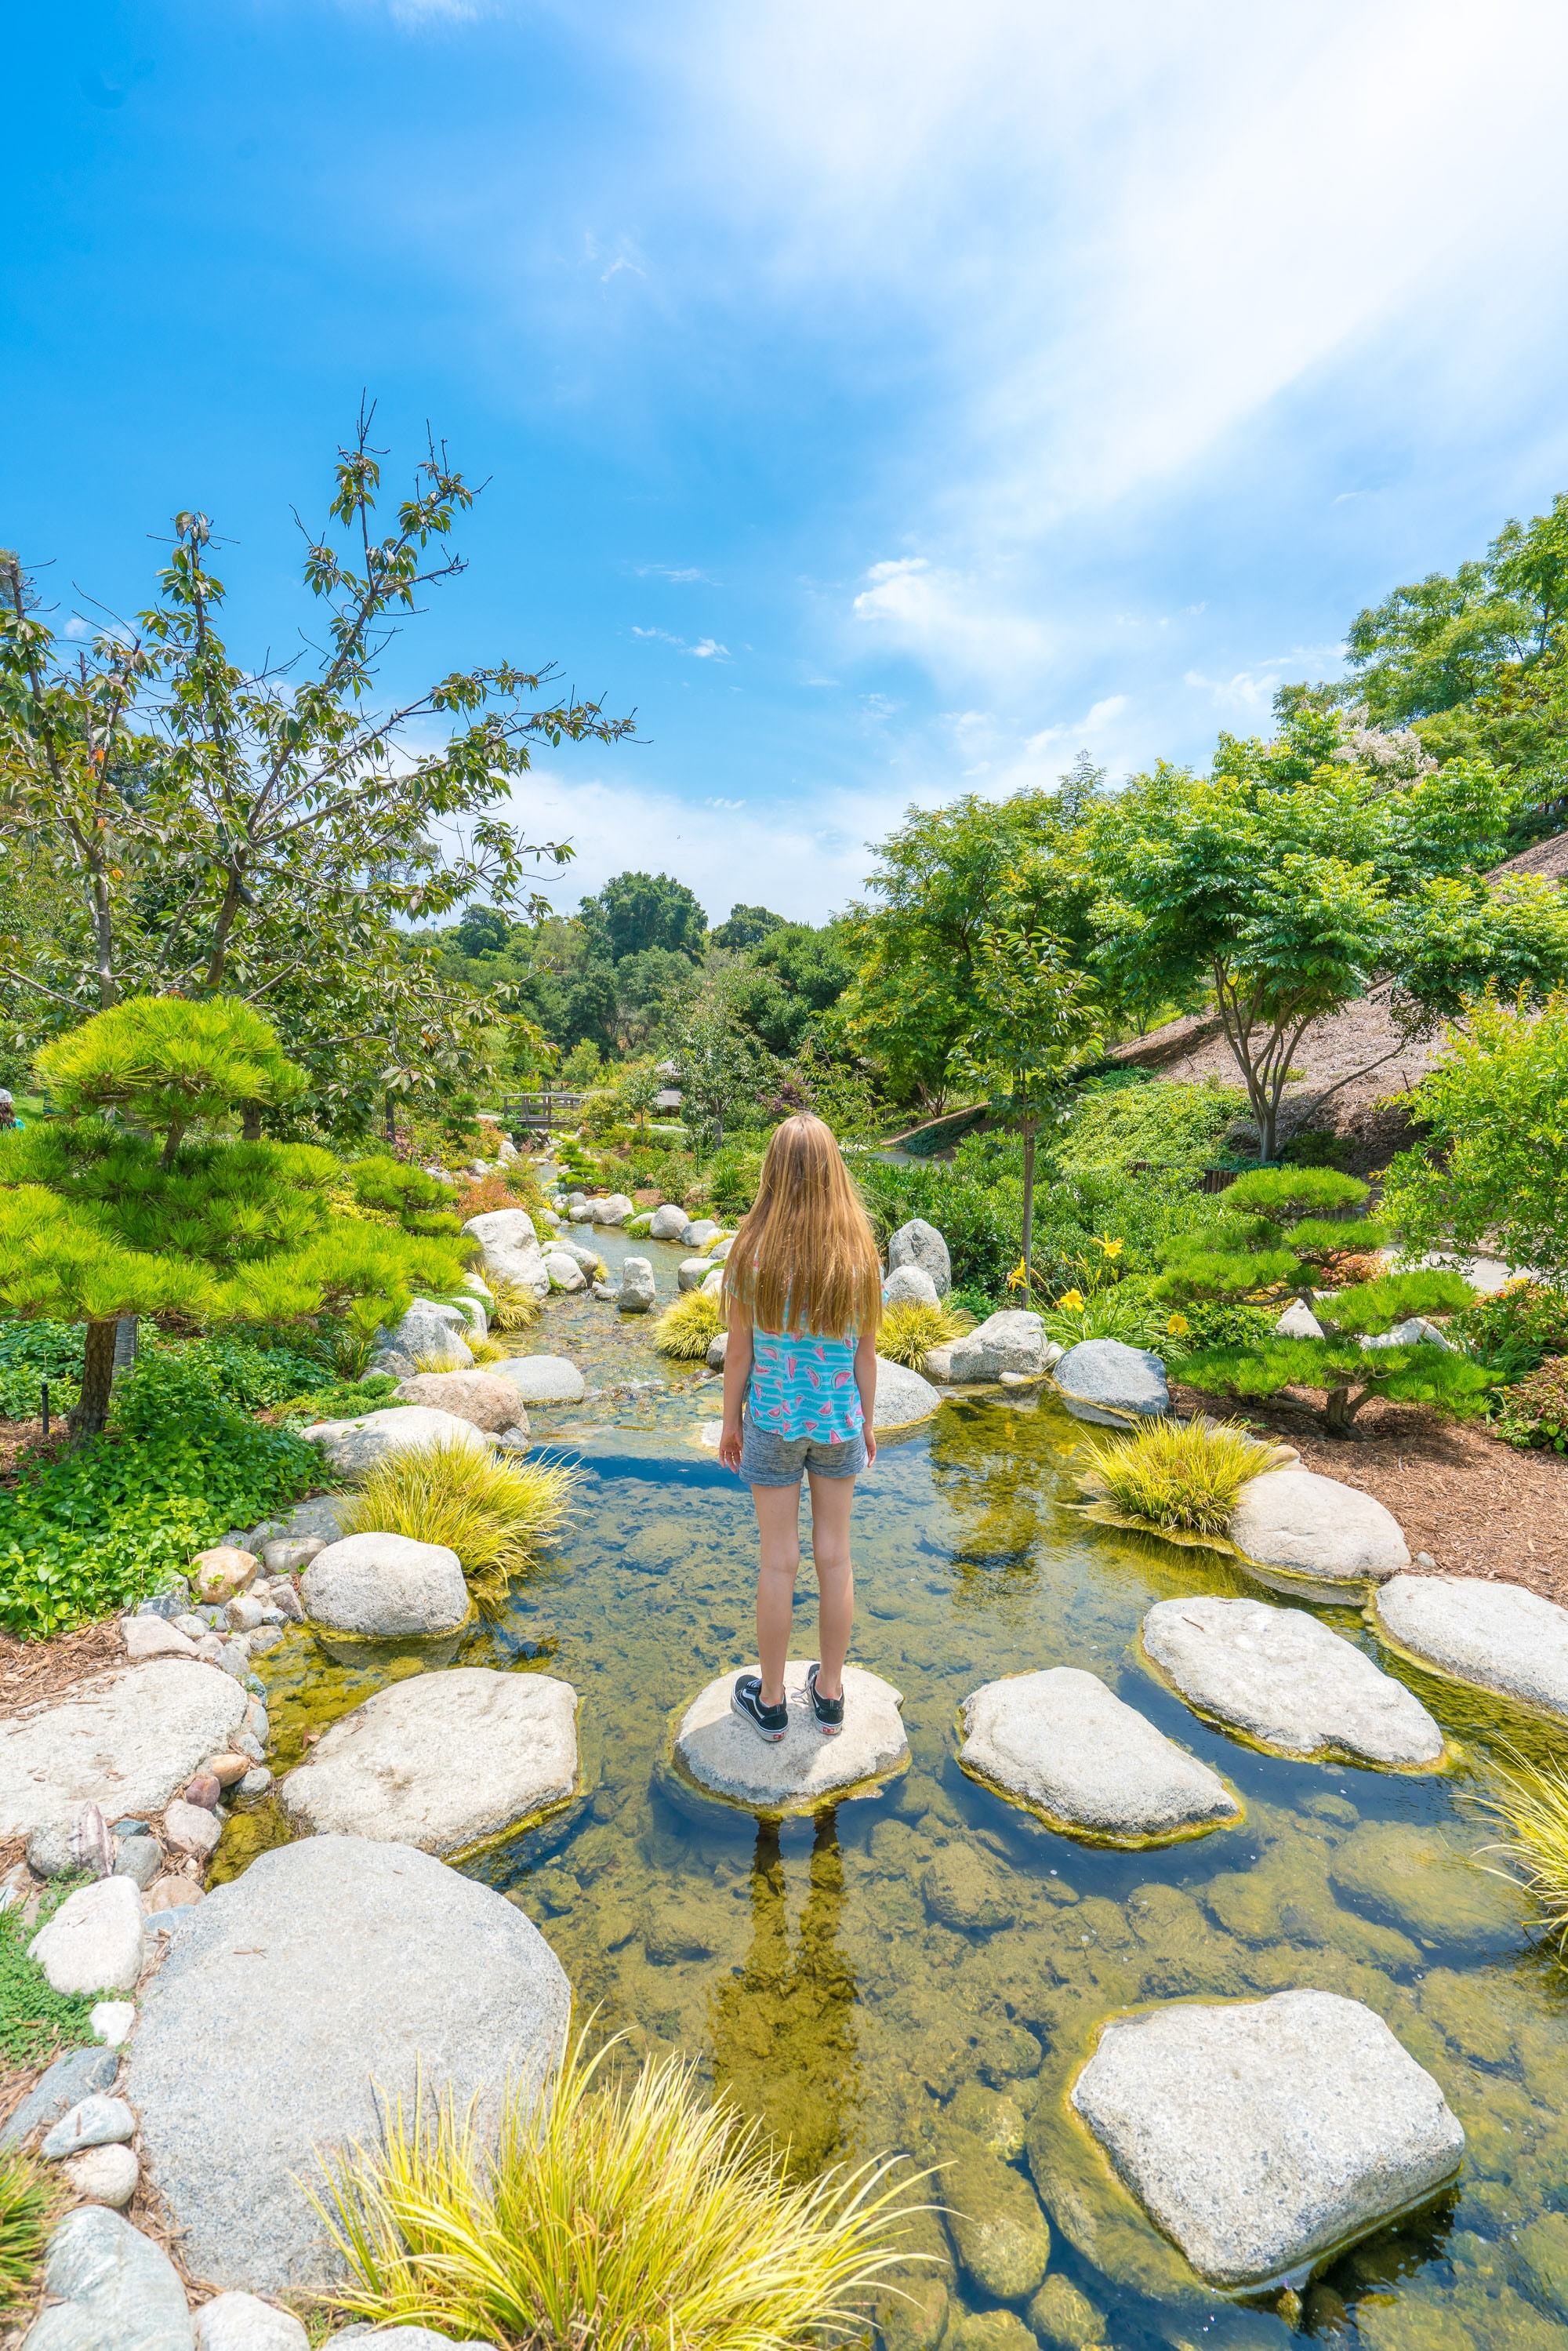 Things to do in Balboa Park: Japanese Friendship Garden